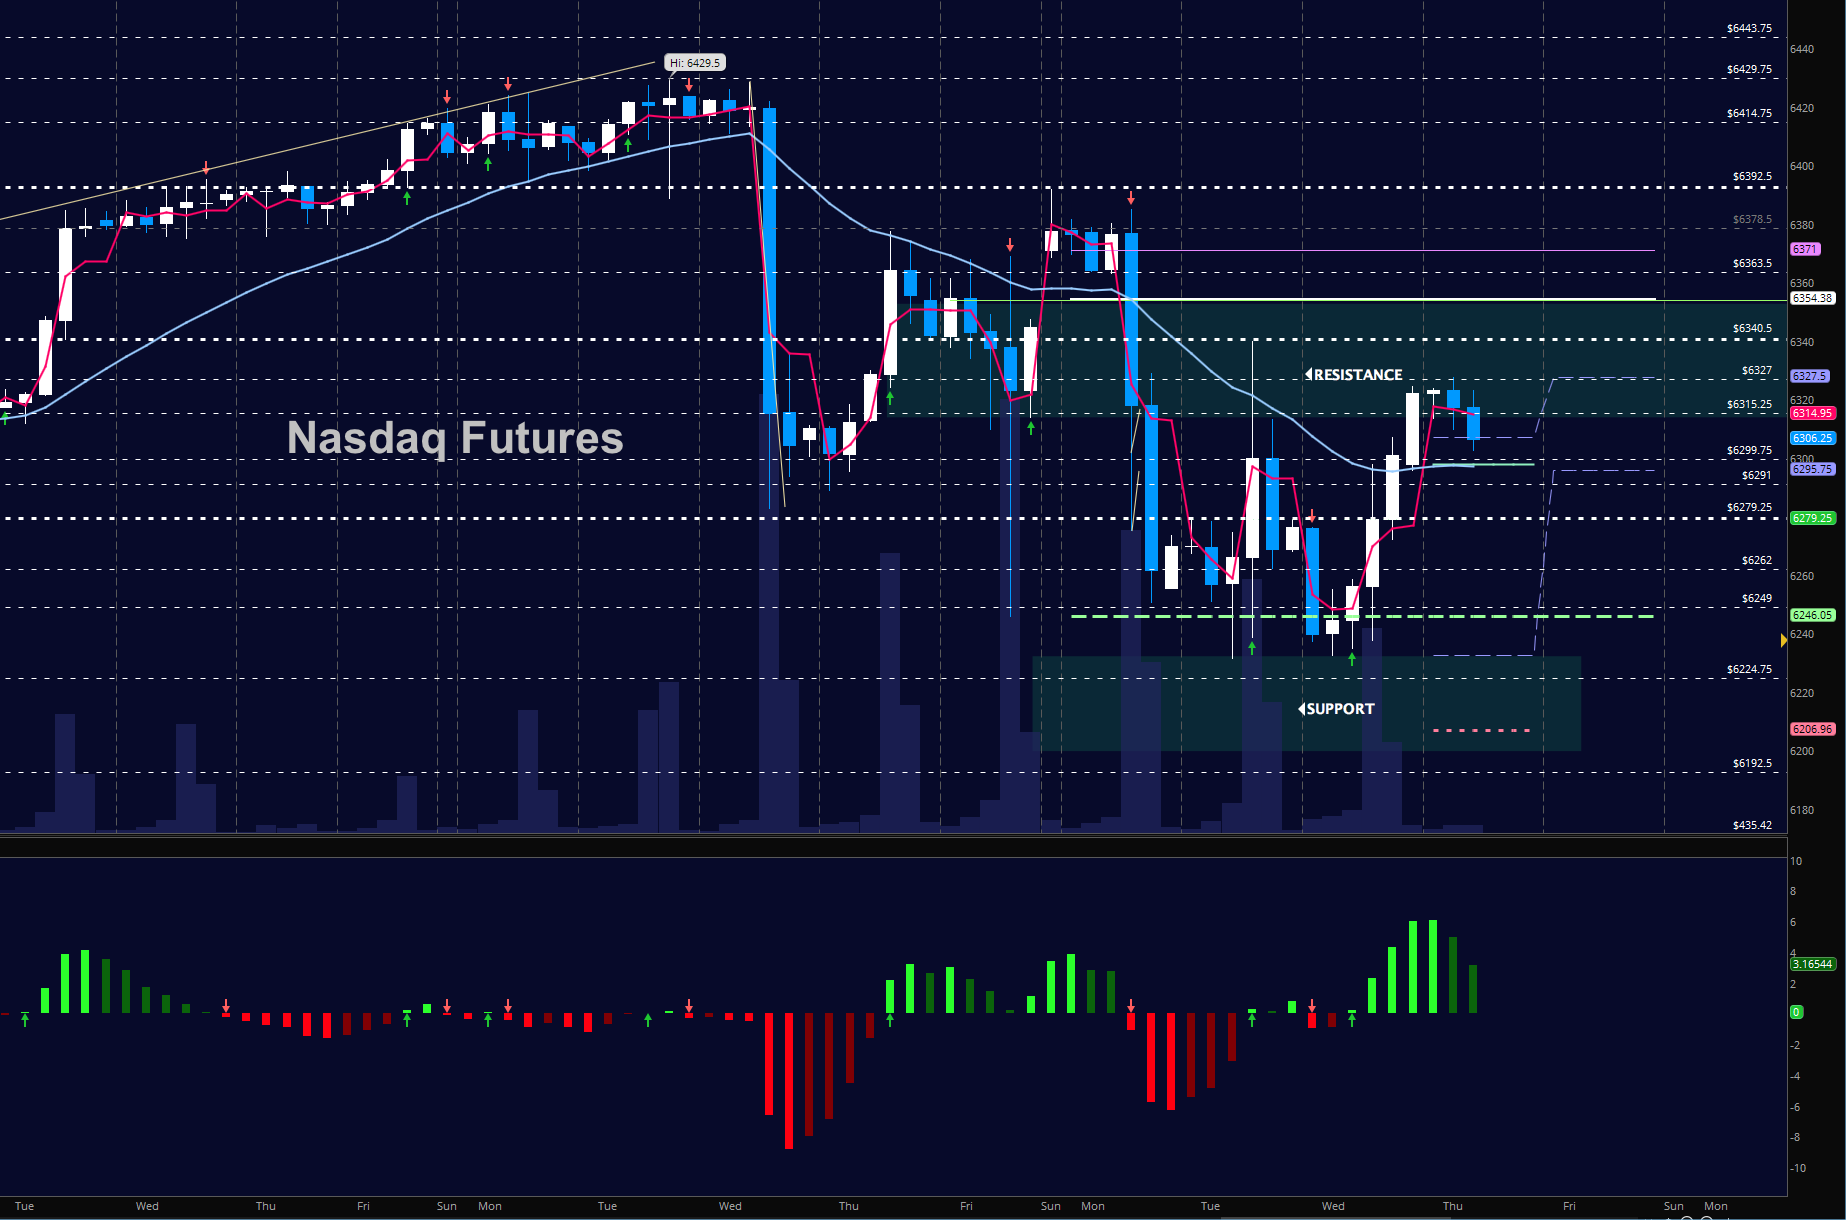 nasdaq futures trading chart_investing_news_december 7